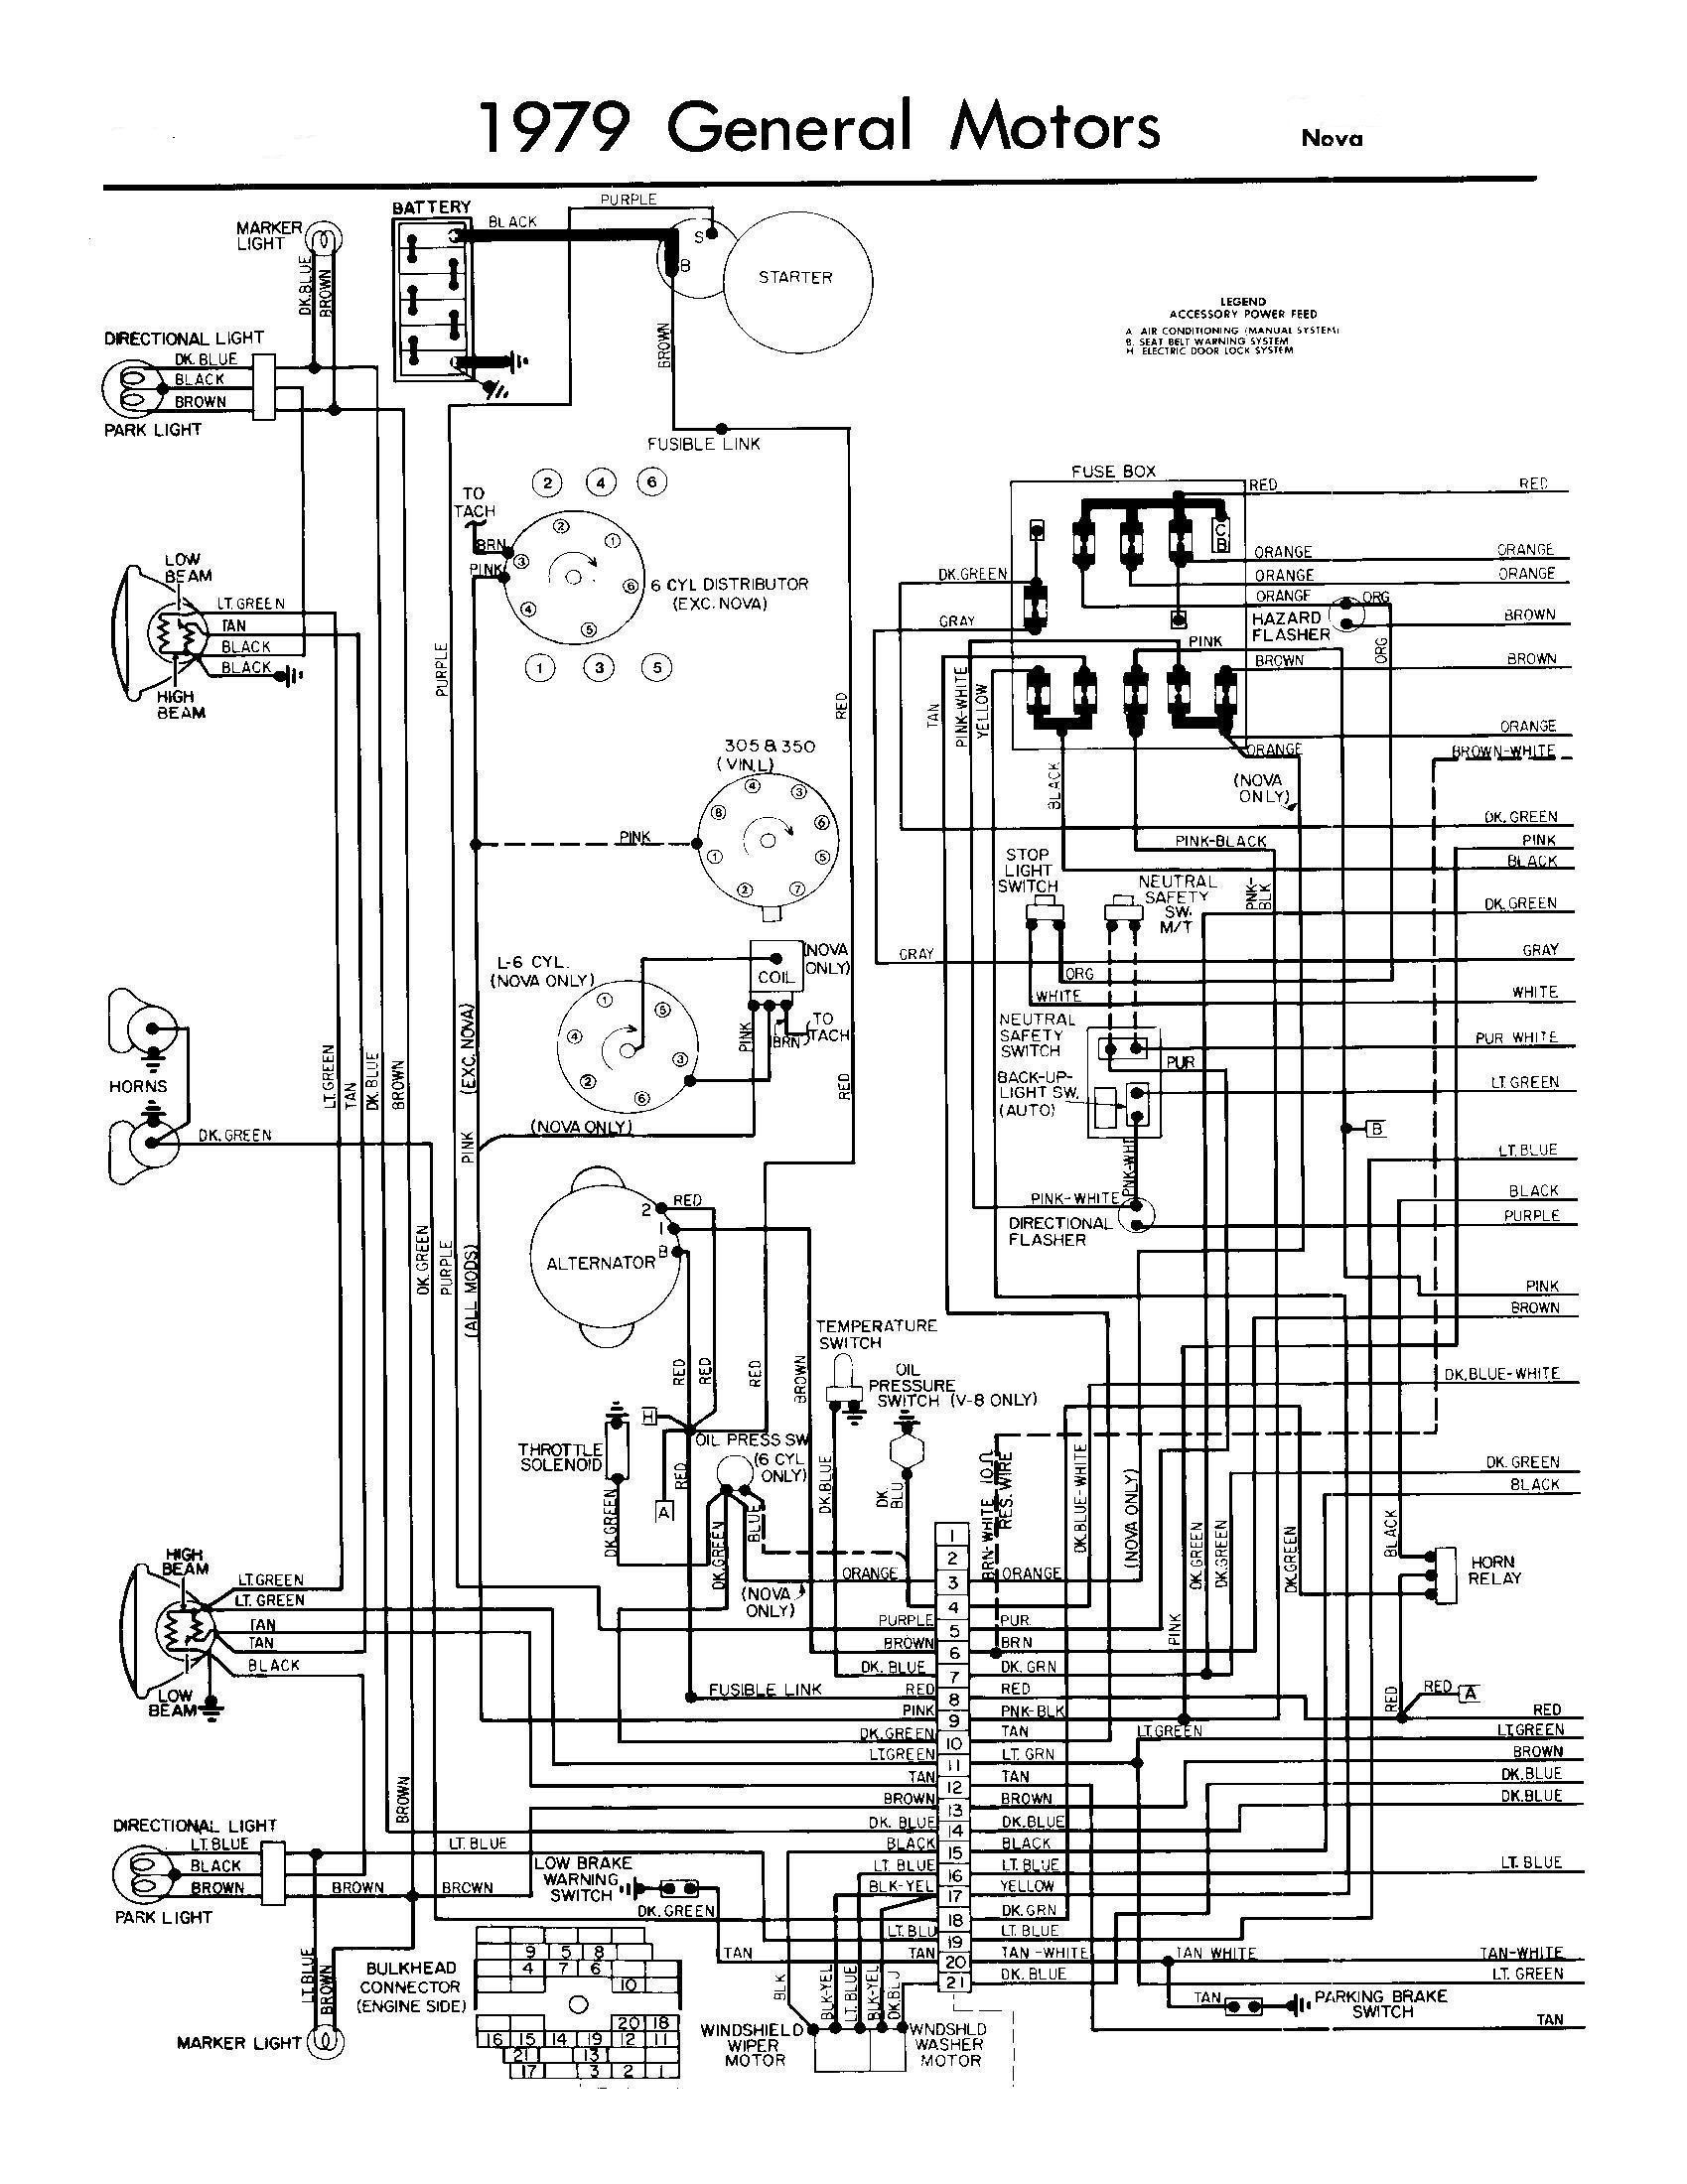 dodge truck wiring harness for 1970 wiring diagram rh e38 muellerbau ib de 1970 ford f100 wiring diagram 1970 ford f250 wiring diagram